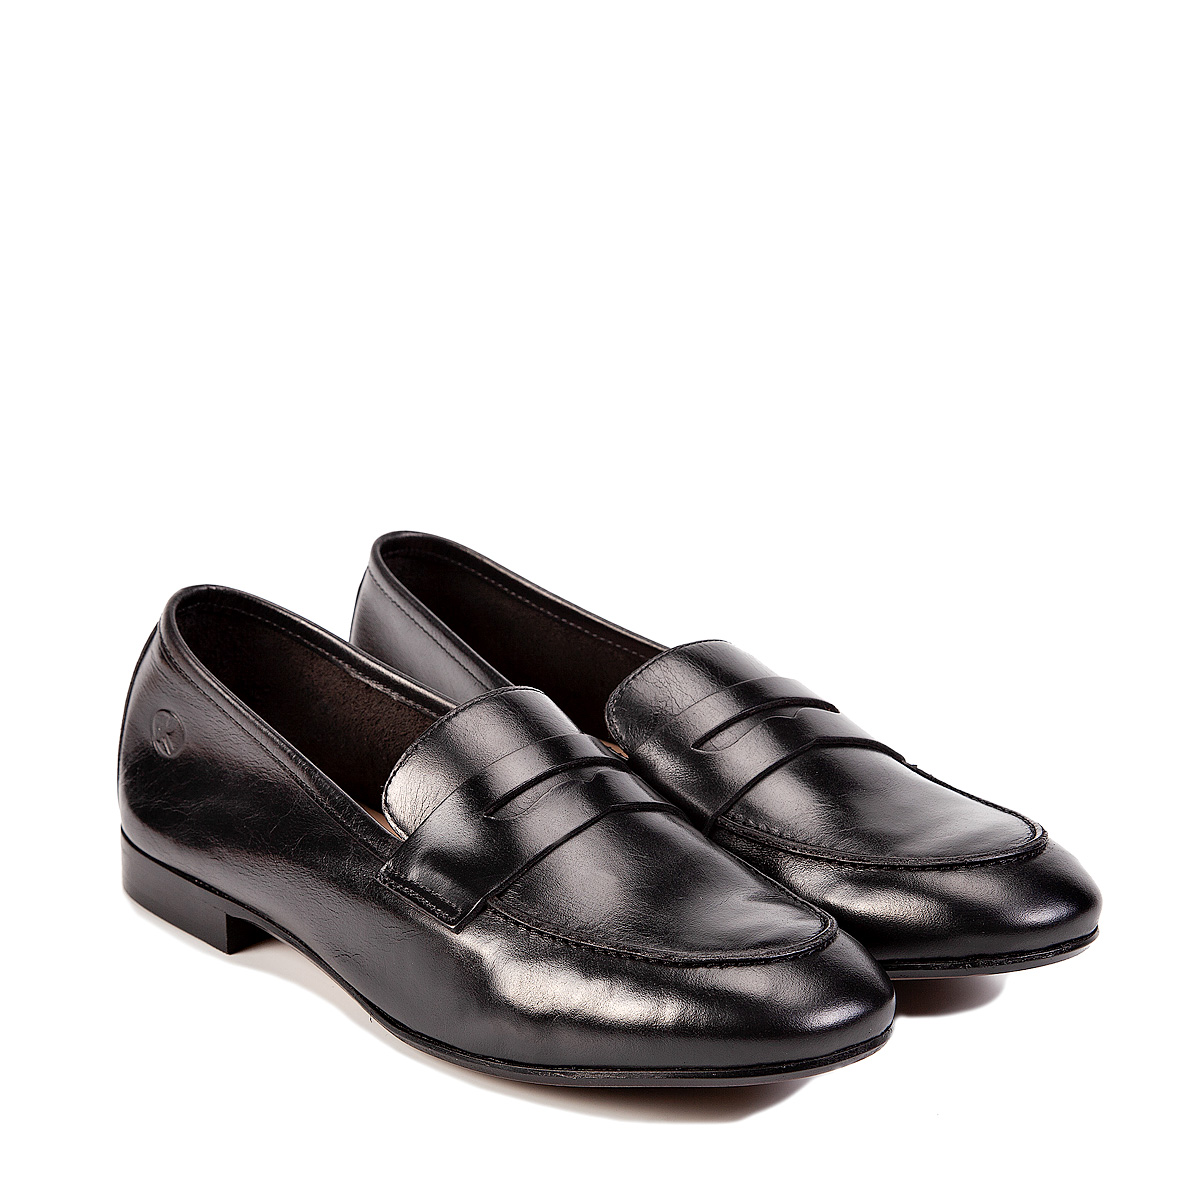 FLORIANA LOAFER